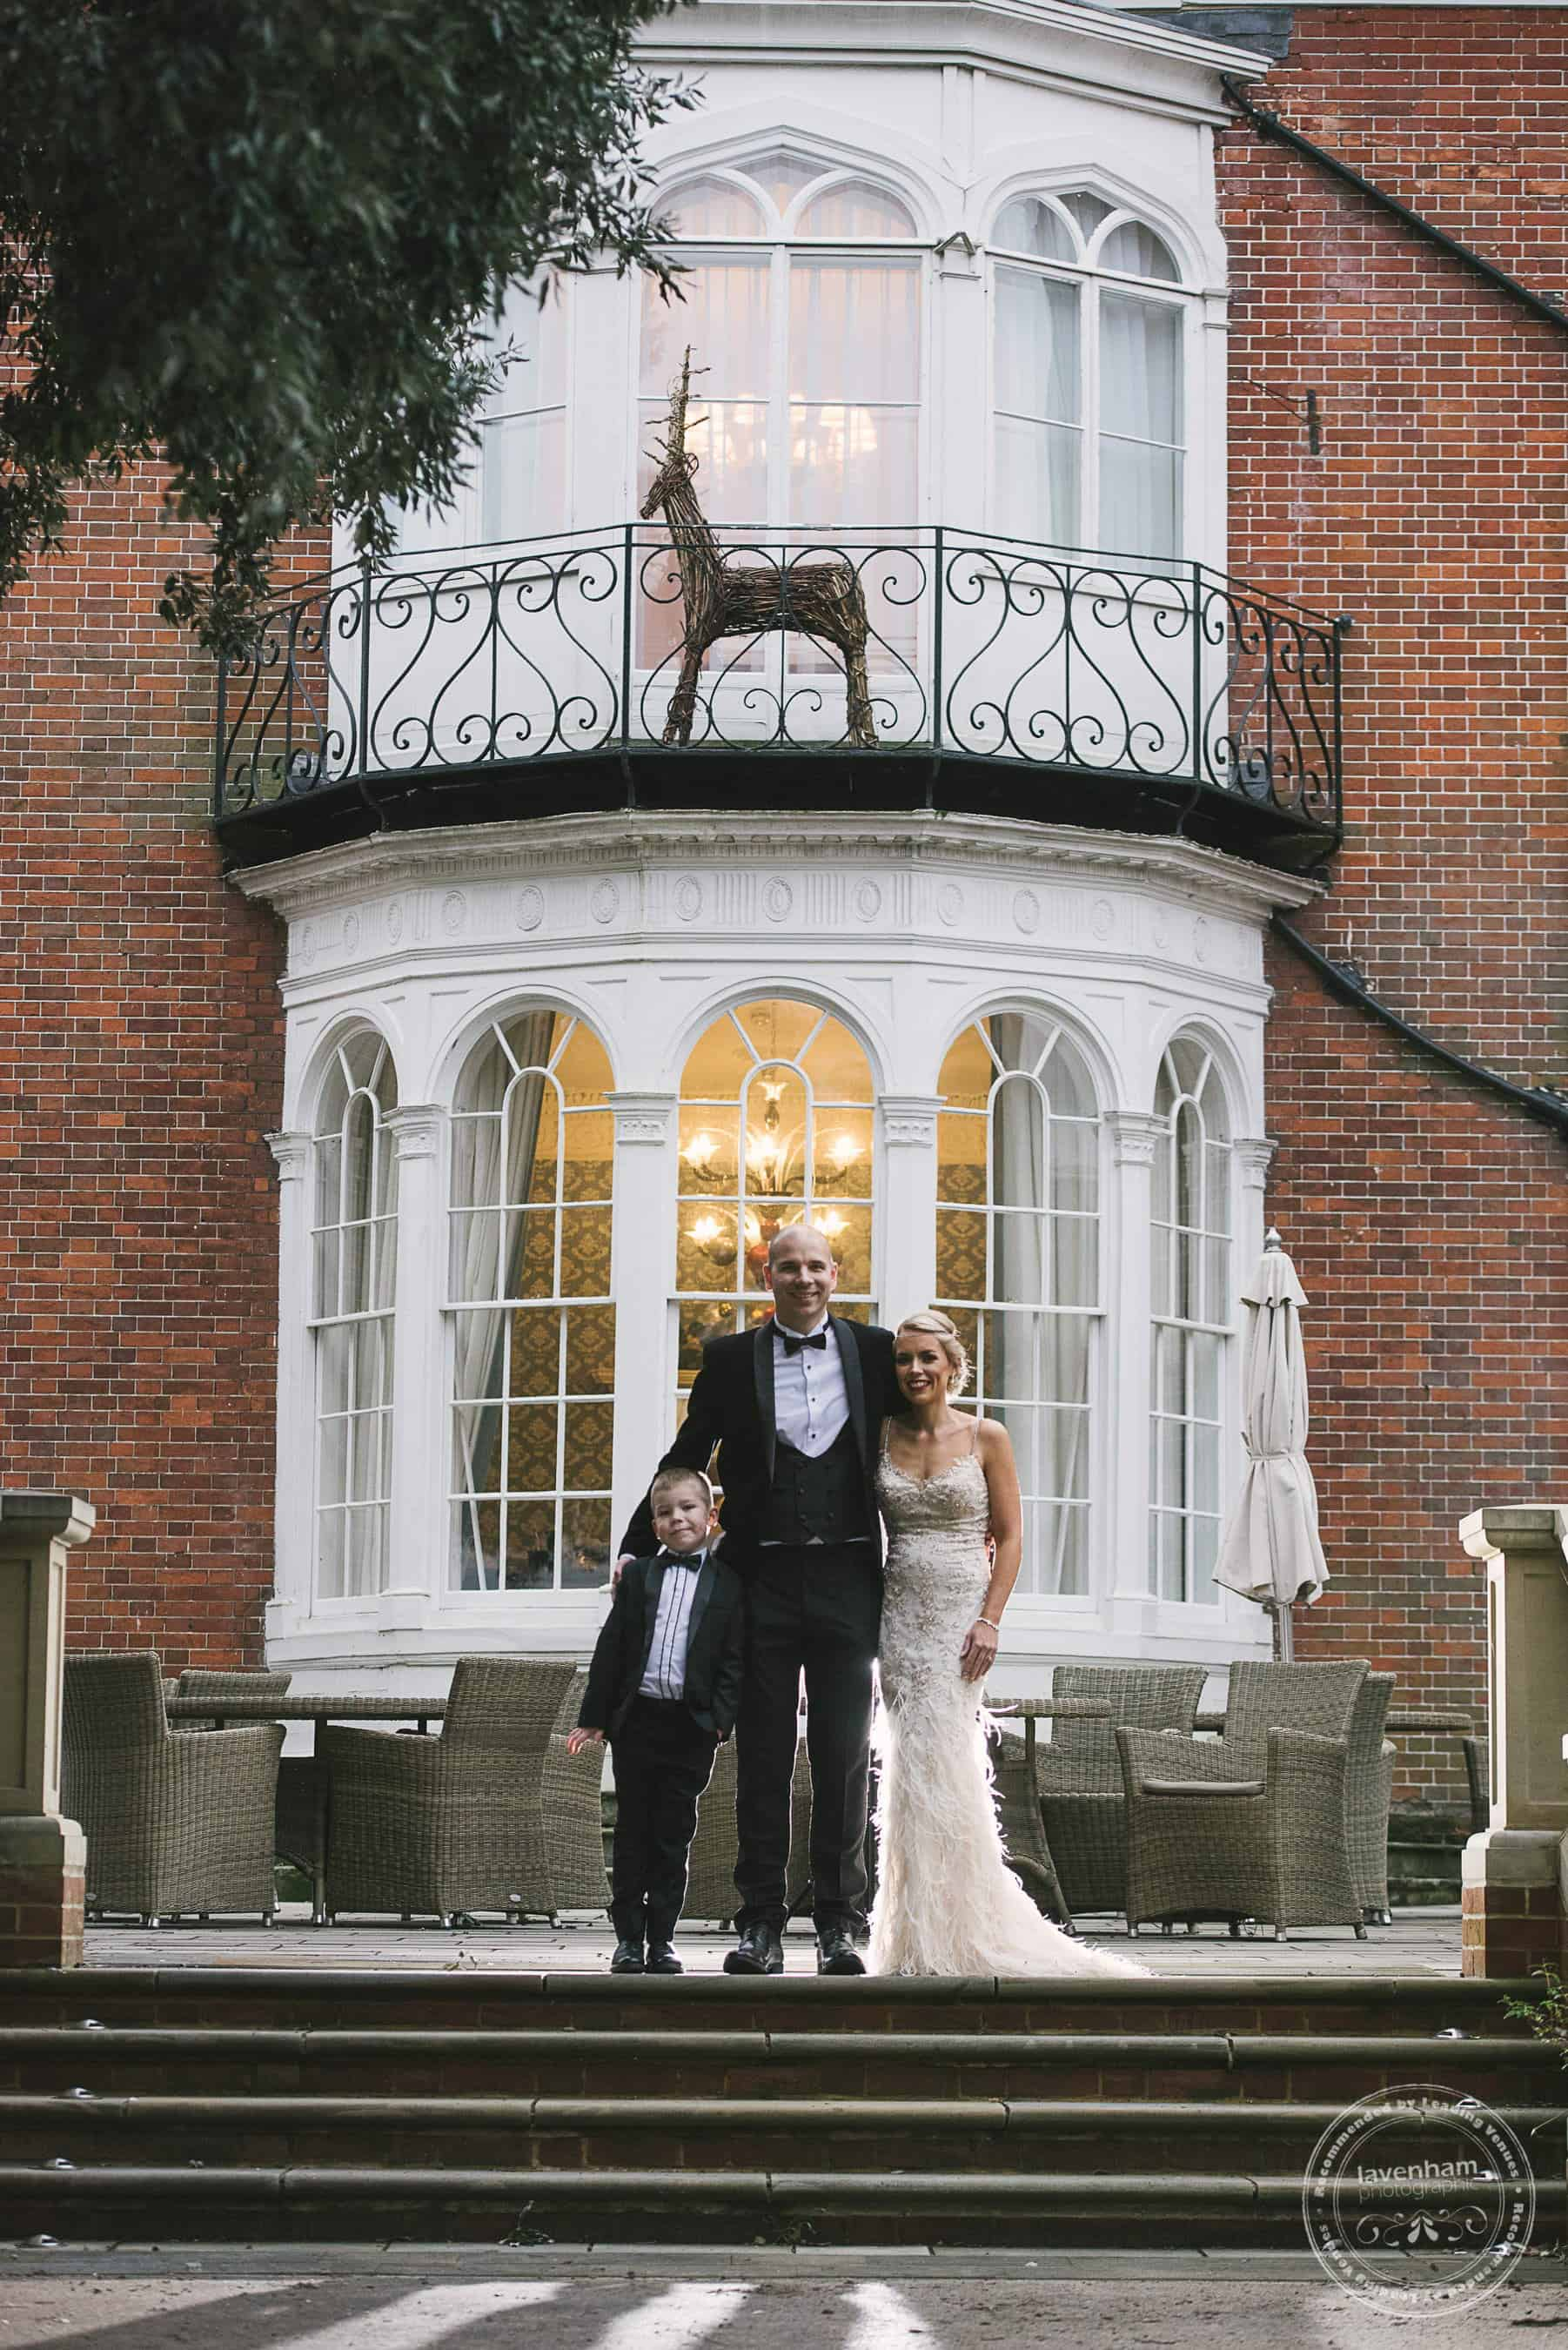 211218 Greyfriars Colchester Wedding Photography Essex Lavenham Photographic 021